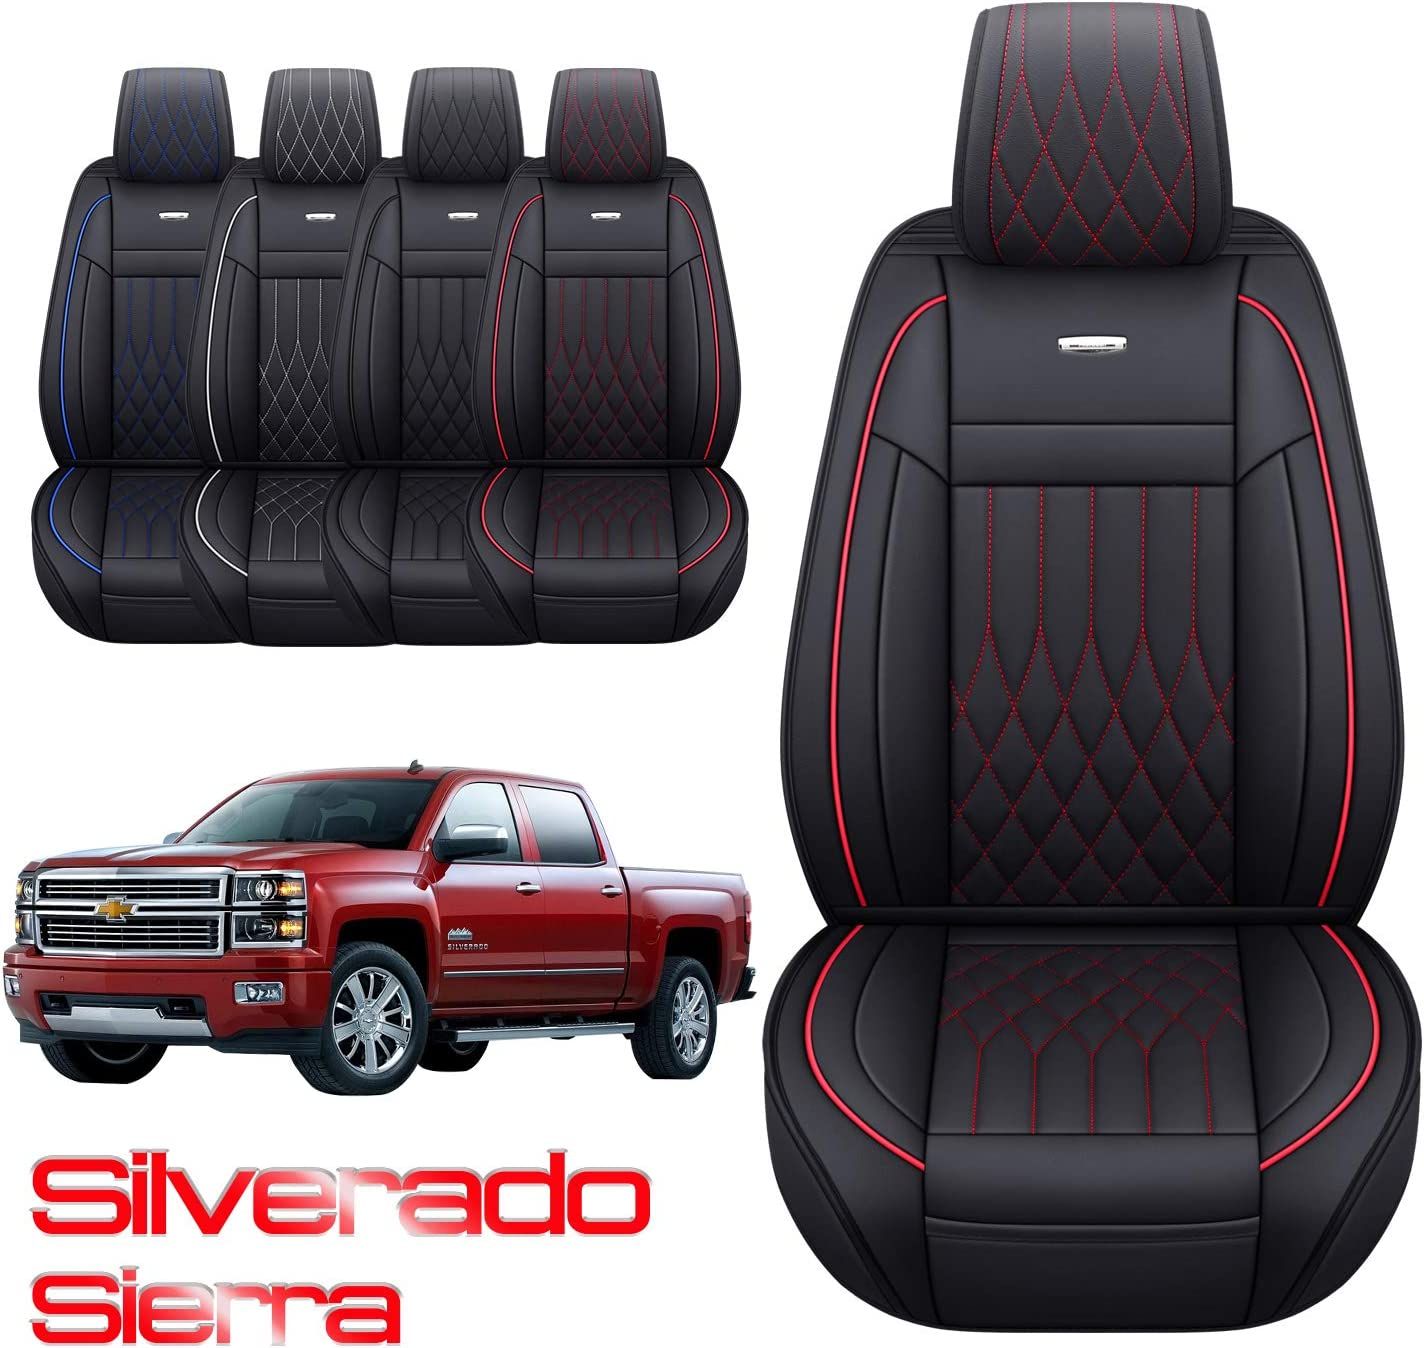 Aierxuan Silverado Sierra Car Seat Covers Front Set with Waterproof Leather Black and Red 3500 HD Crew,Double,Extended Cab or Pick-up Truck Fit for 2007-2020 1500//2500 HD